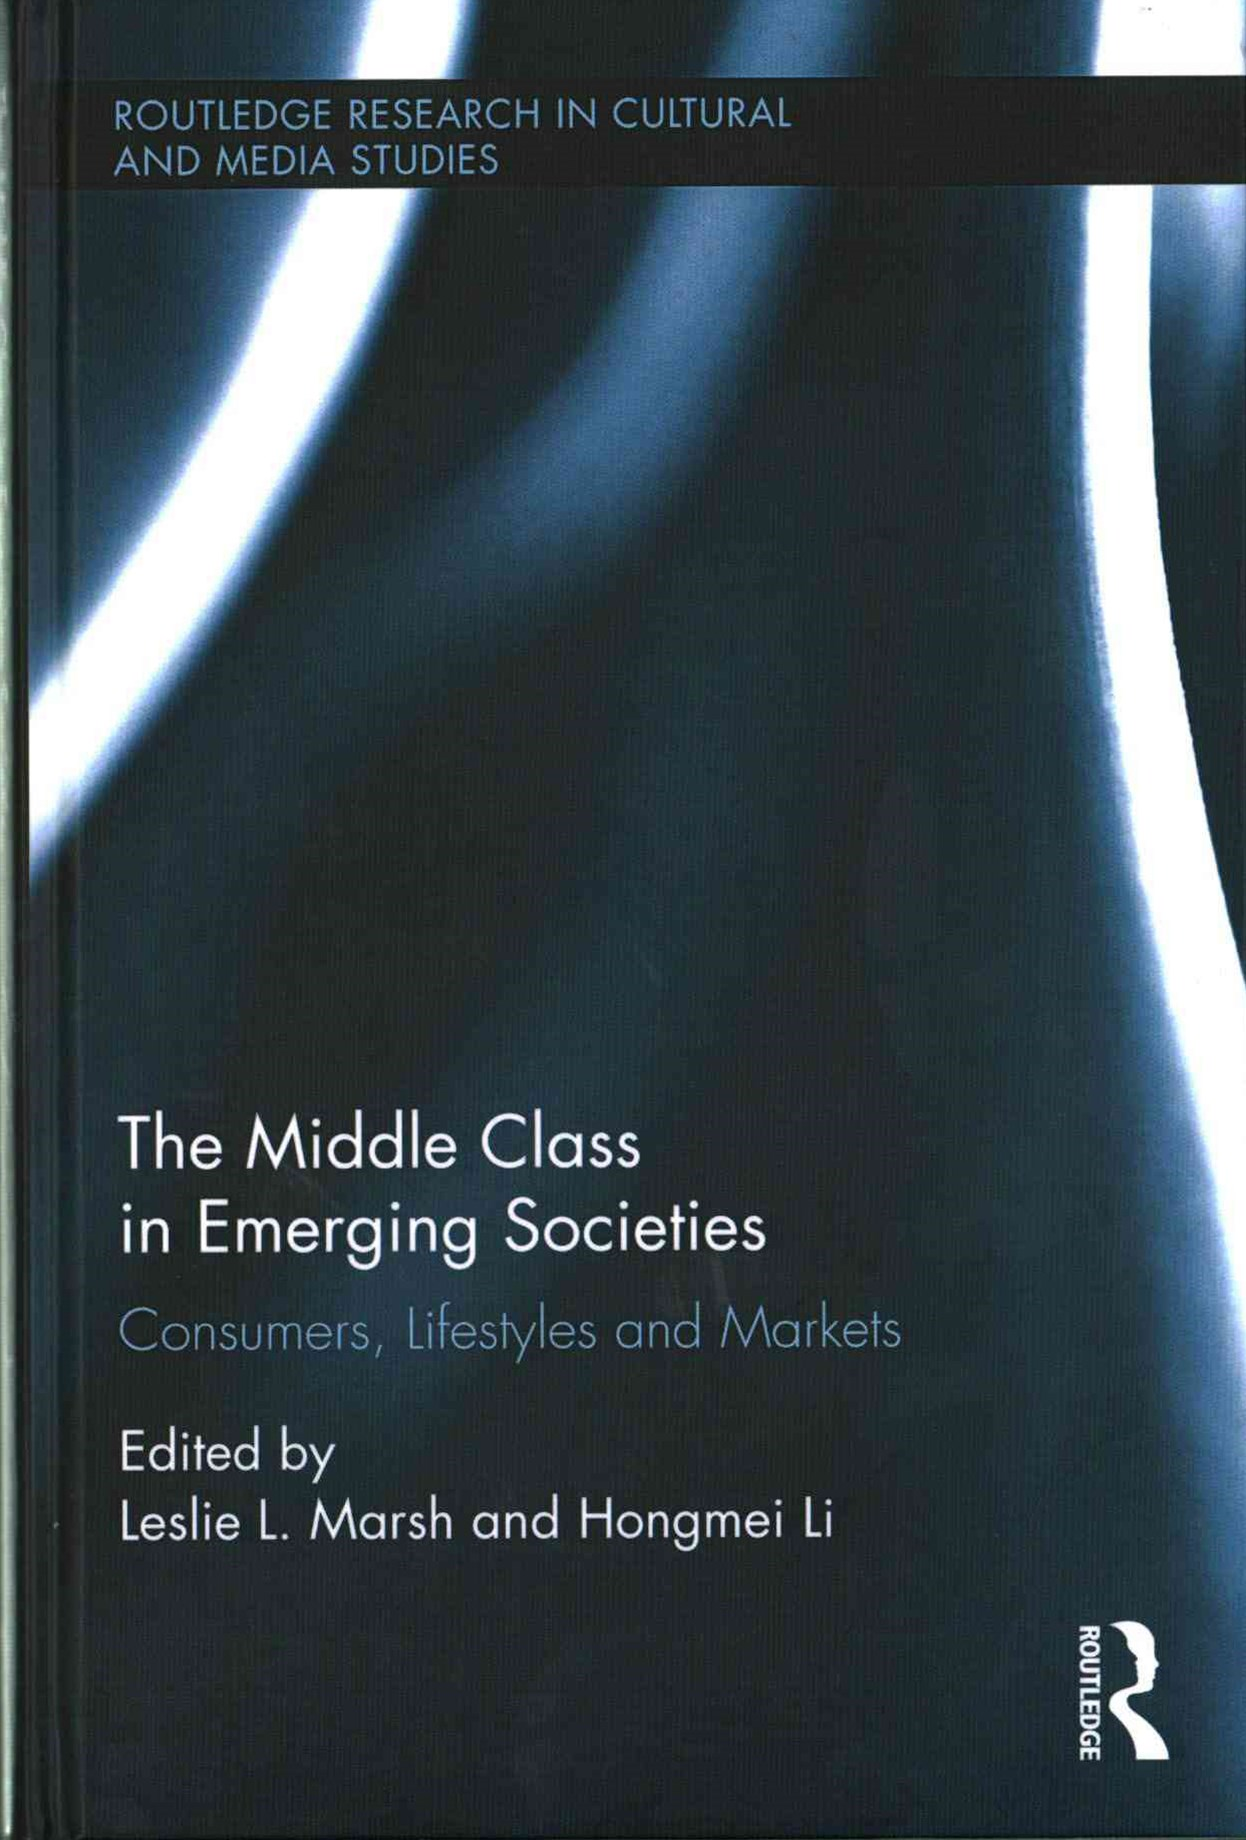 Middle Class in Emerging Societies